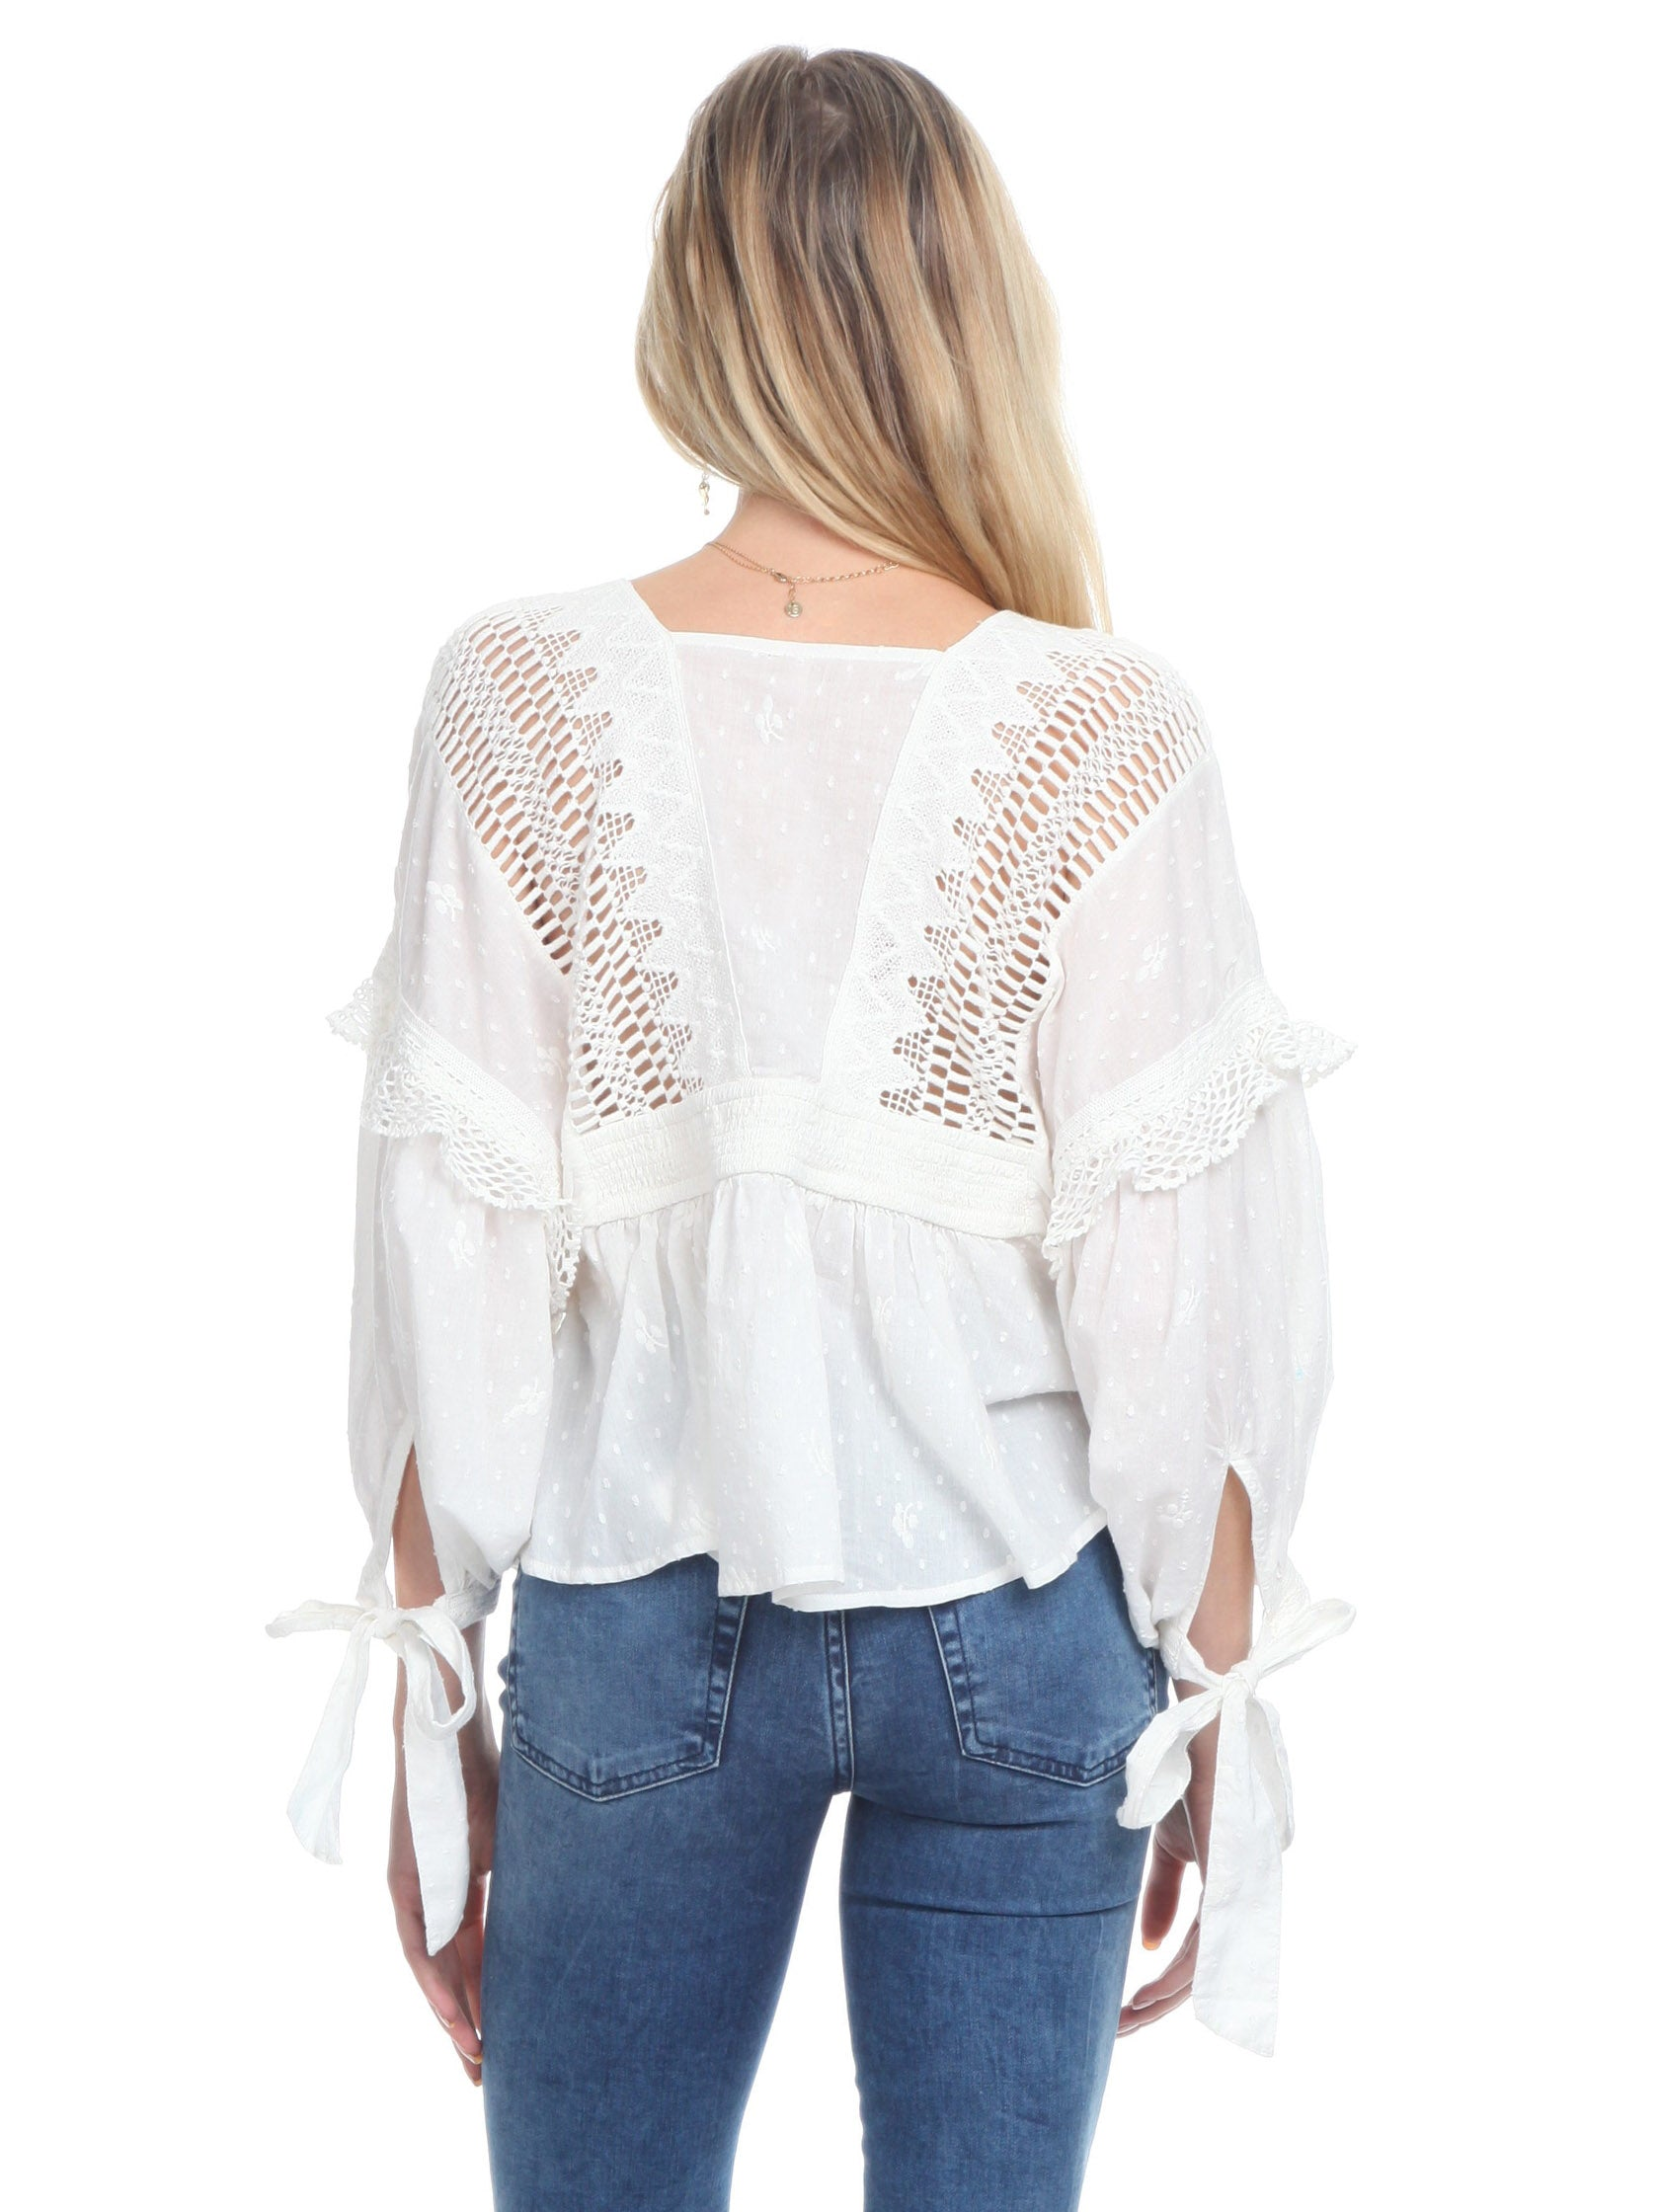 Women outfit in a top rental from Free People called Drive You Mad Blouse